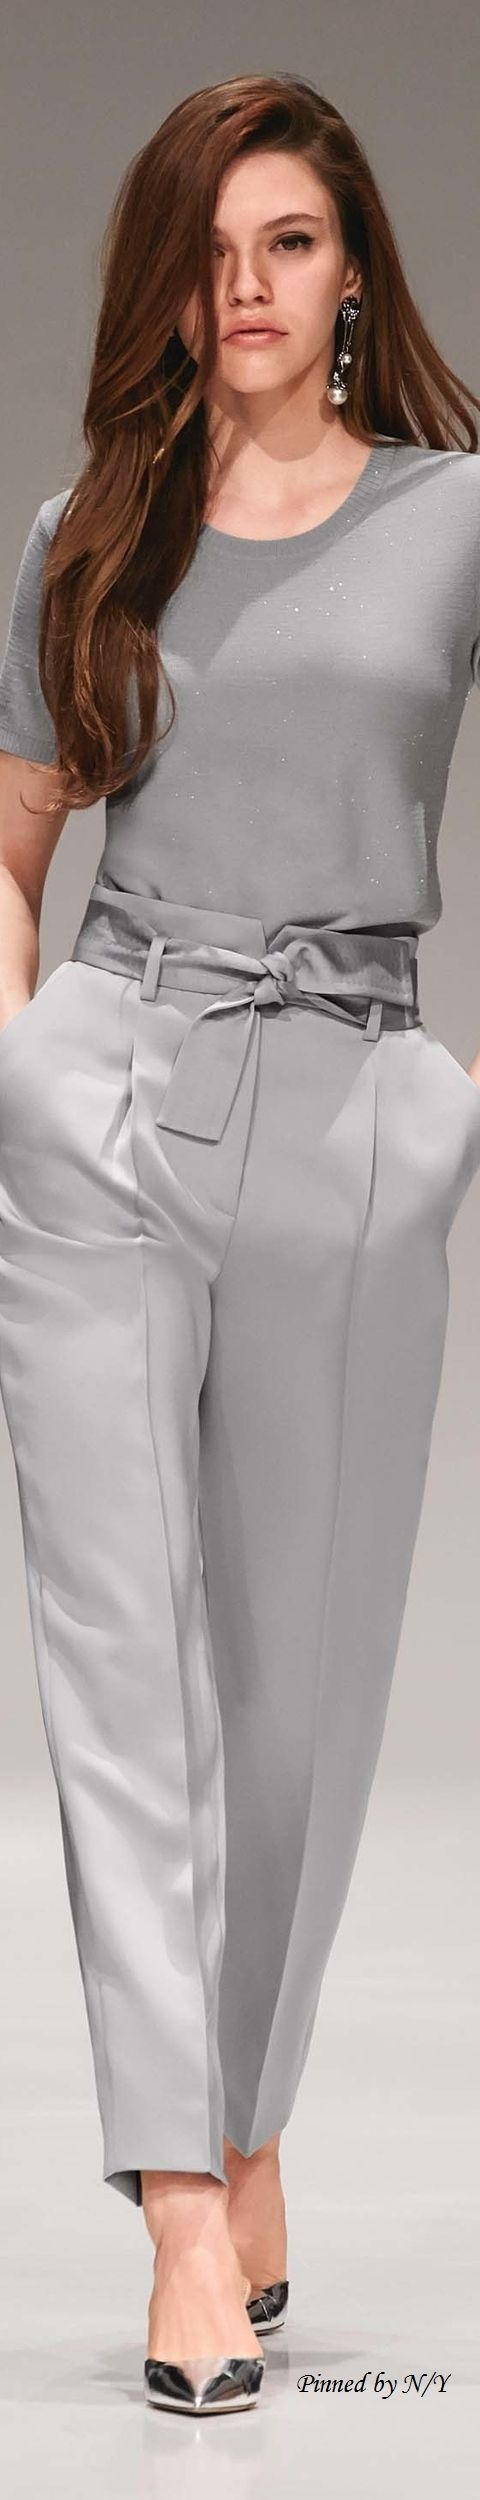 Yes, grey, but far from boring! FOLLOW ME at www.thevintagelig... Escada Resort 2017 Clothing, Shoes & Jewelry - Women - women's belts - http://amzn.to/2kwF6LI